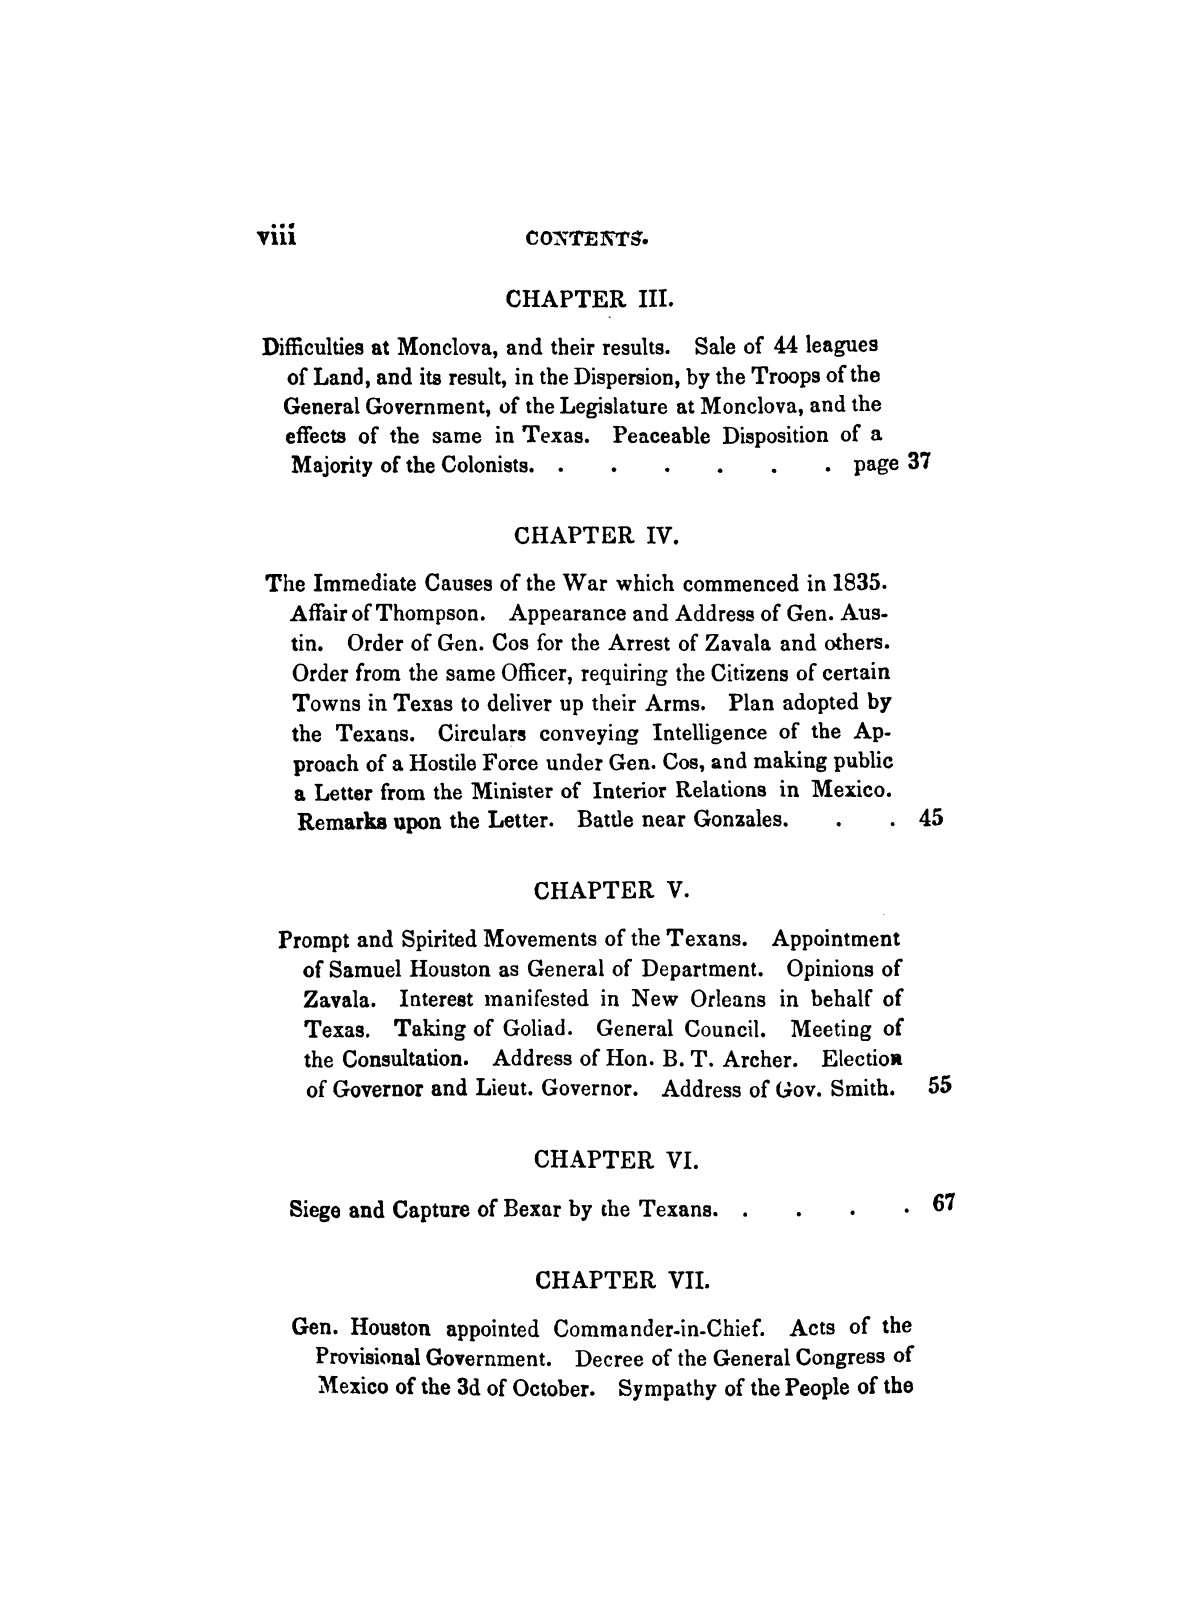 History of the revolution in Texas, particularly of the war of 1835 & '36; together with the latest geographical, topographical, and statistical accounts of the country, from the most authentic sources. Also, an appendix. By the Rev. C. Newell.                                                                                                      [Sequence #]: 8 of 227